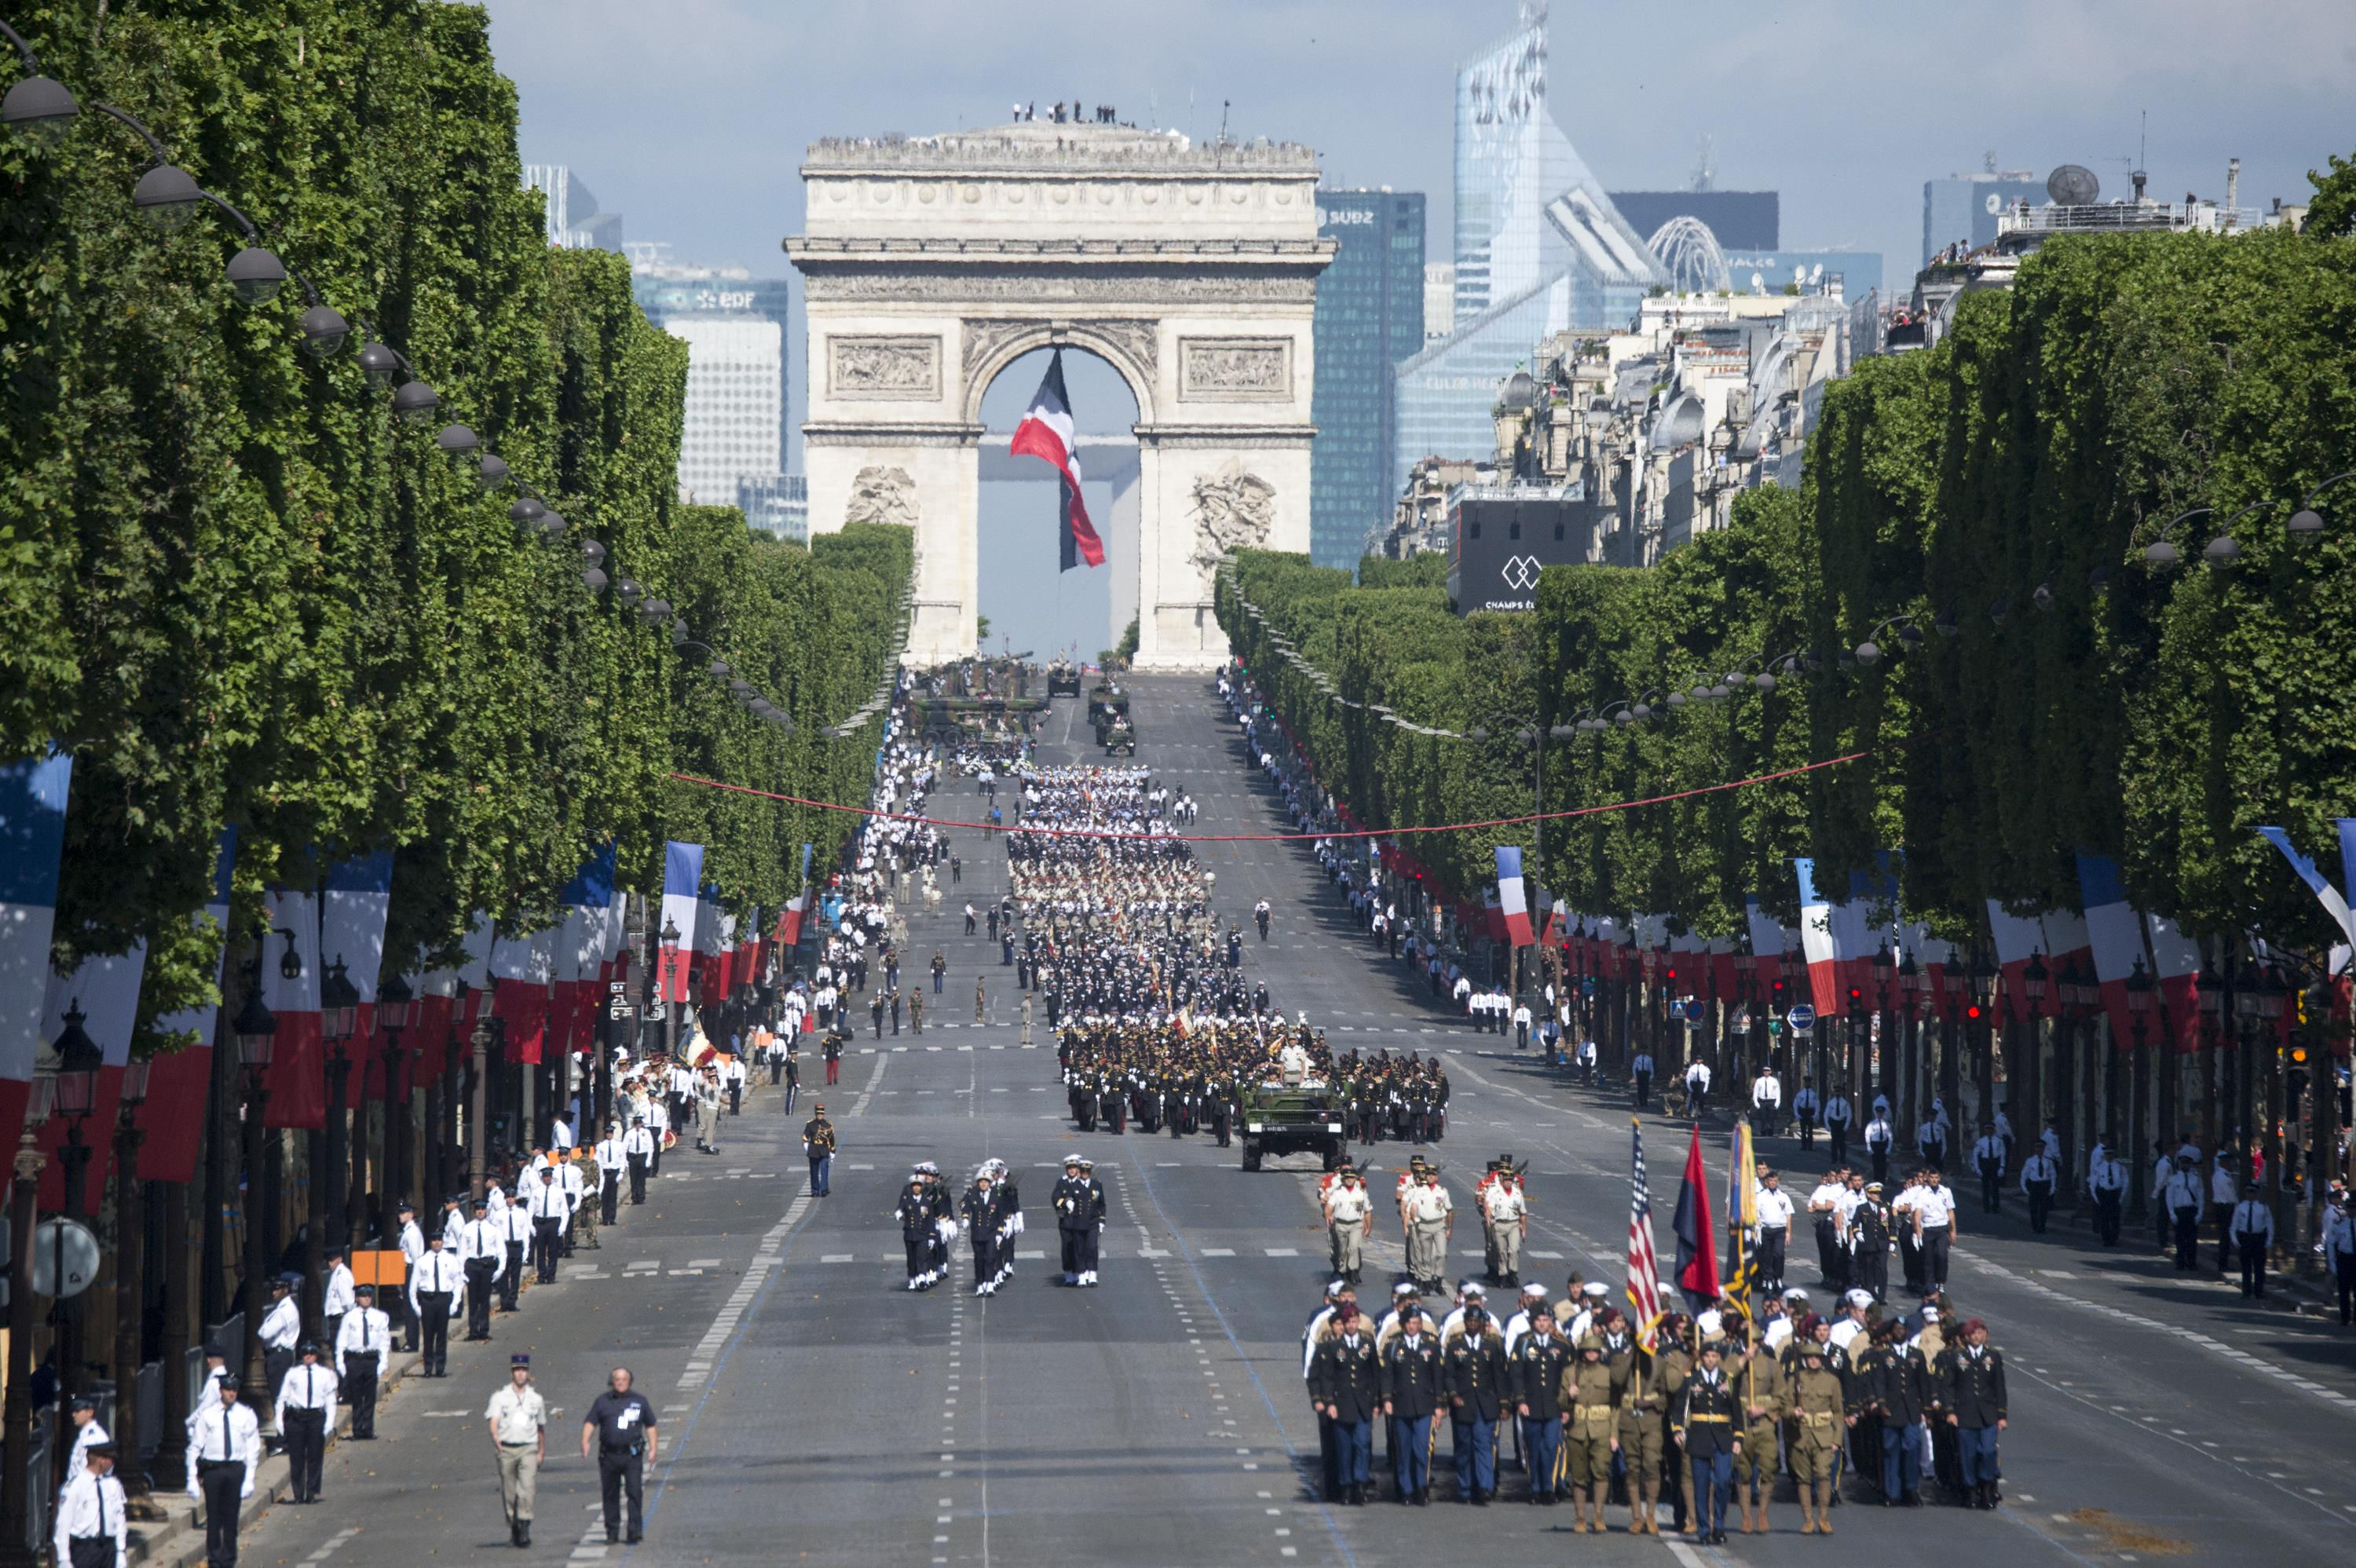 Bastille Day military parade down the Champs-Elysees in Paris, July 14, 2017